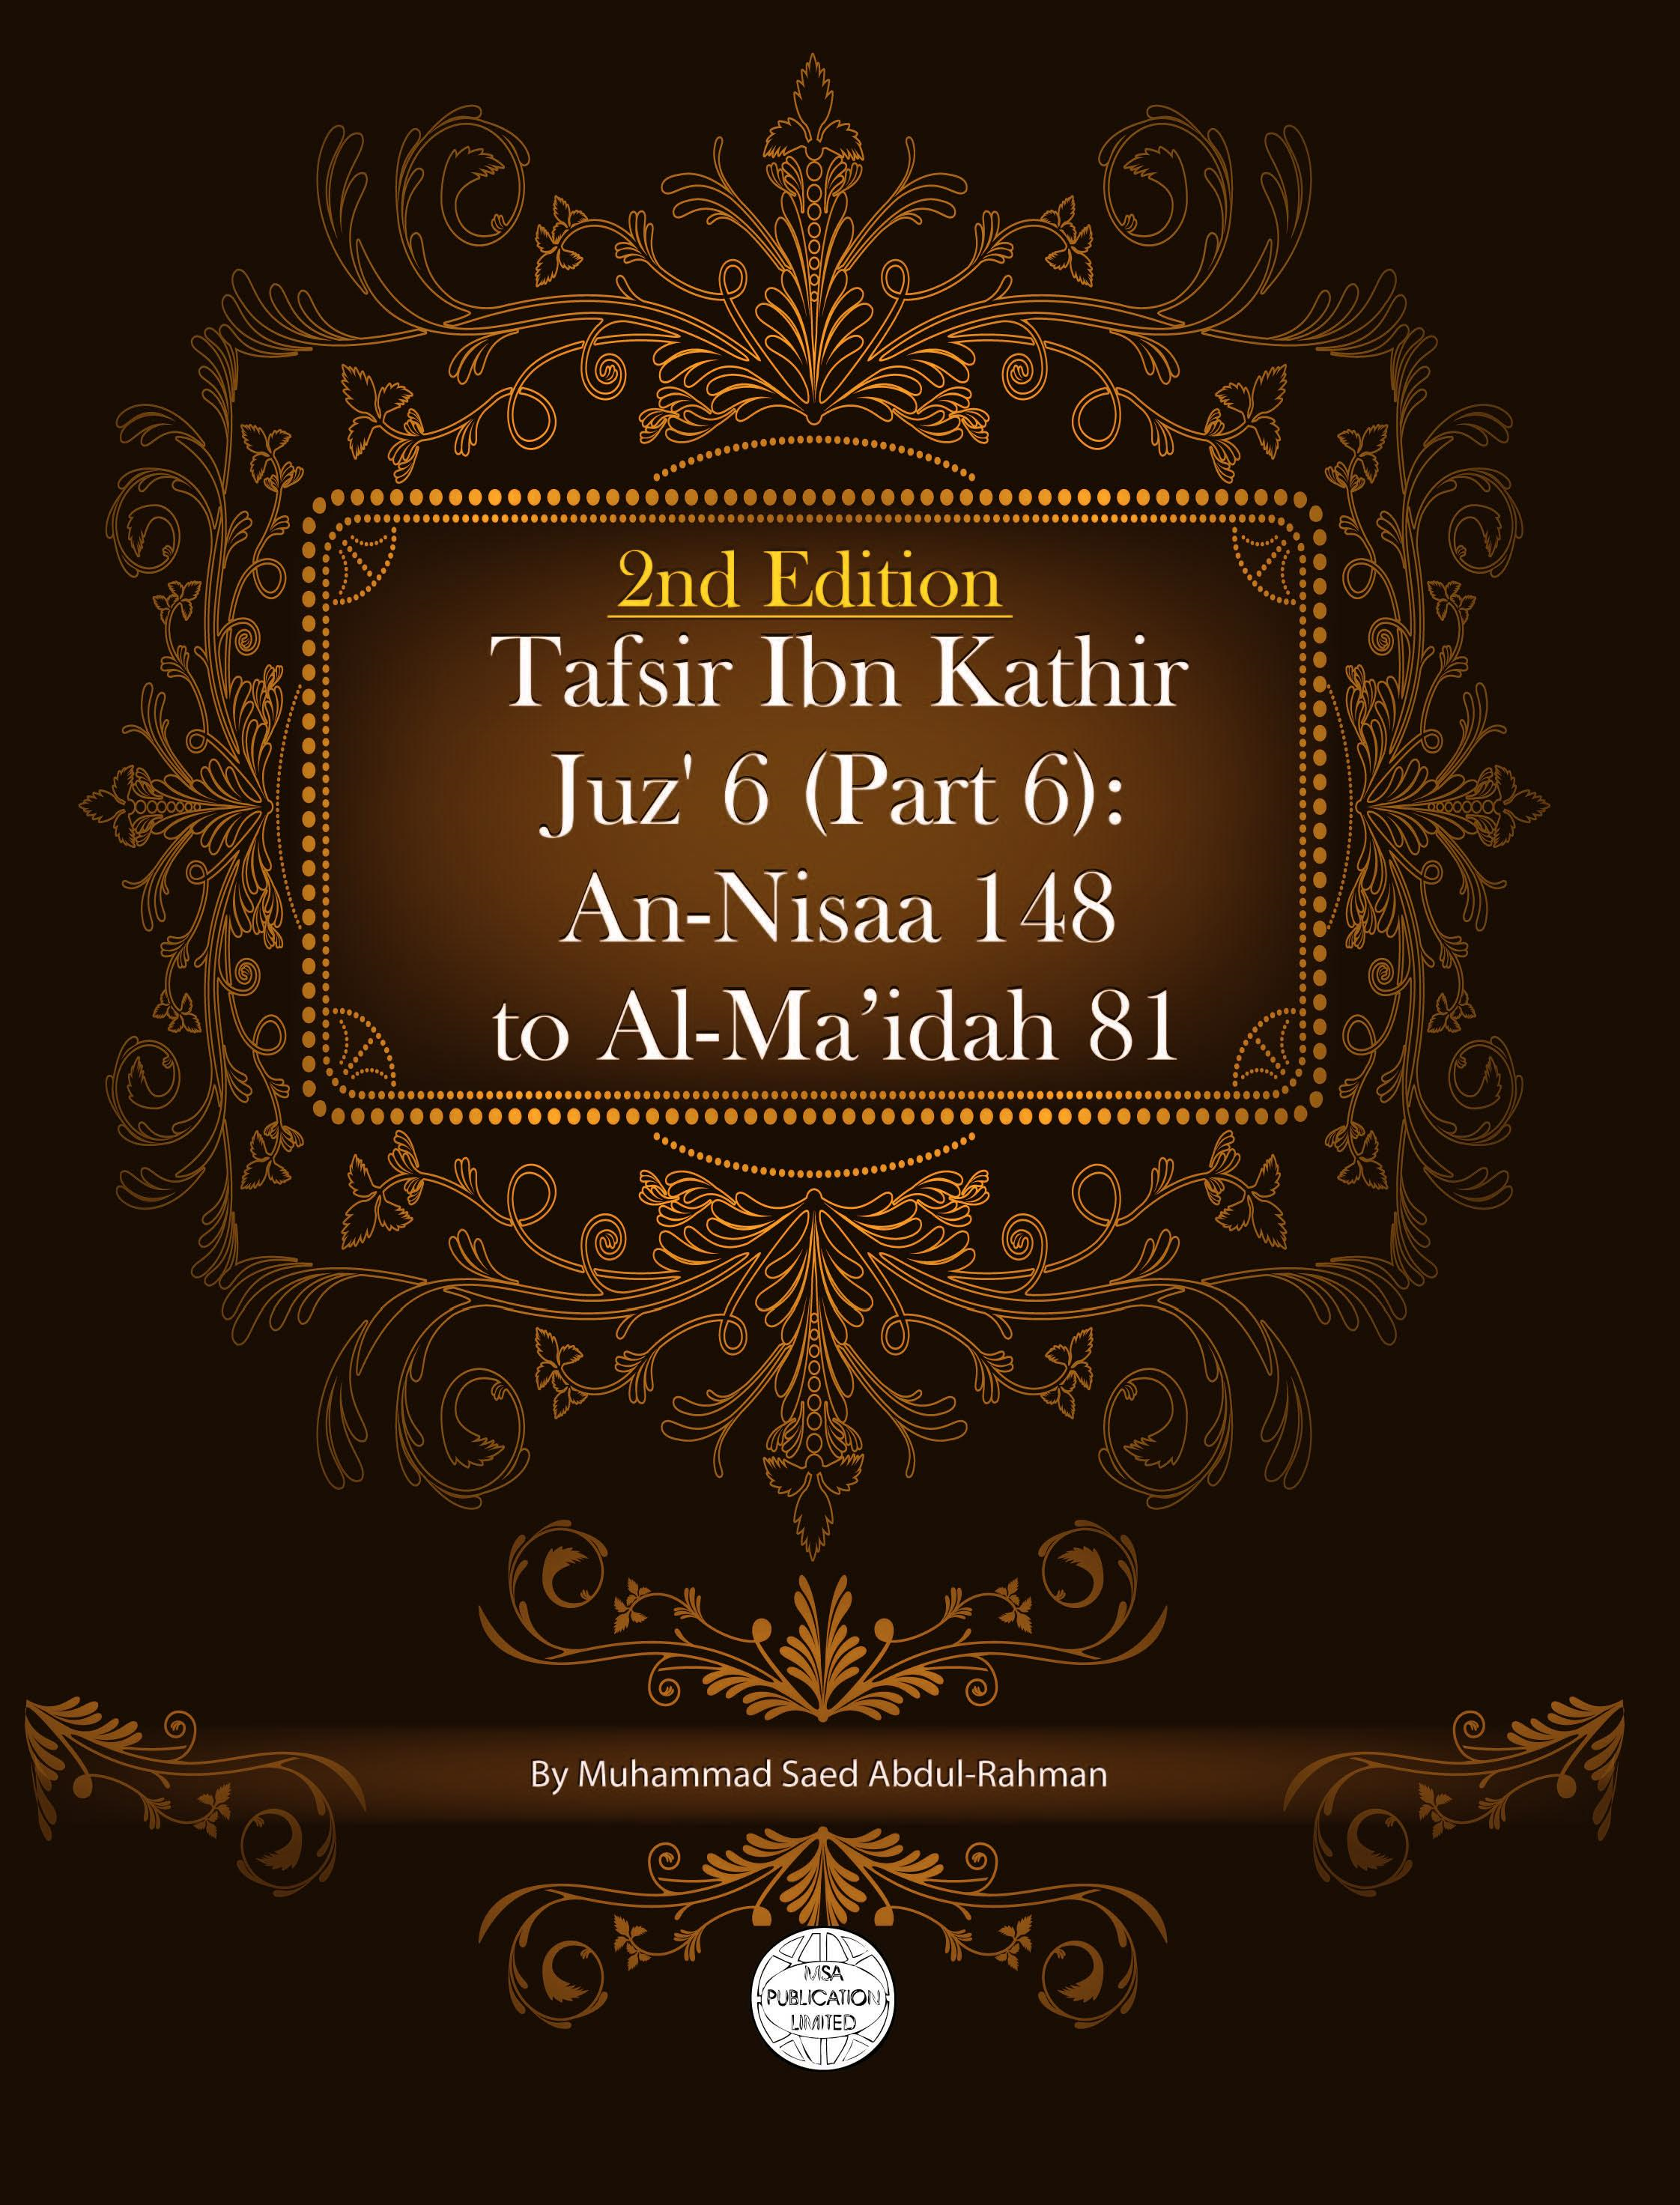 Tafsir Ibn Kathir Juz' 6 (Part 6): An-Nisaa 148 To Al-Ma'idah 81 2nd Edition